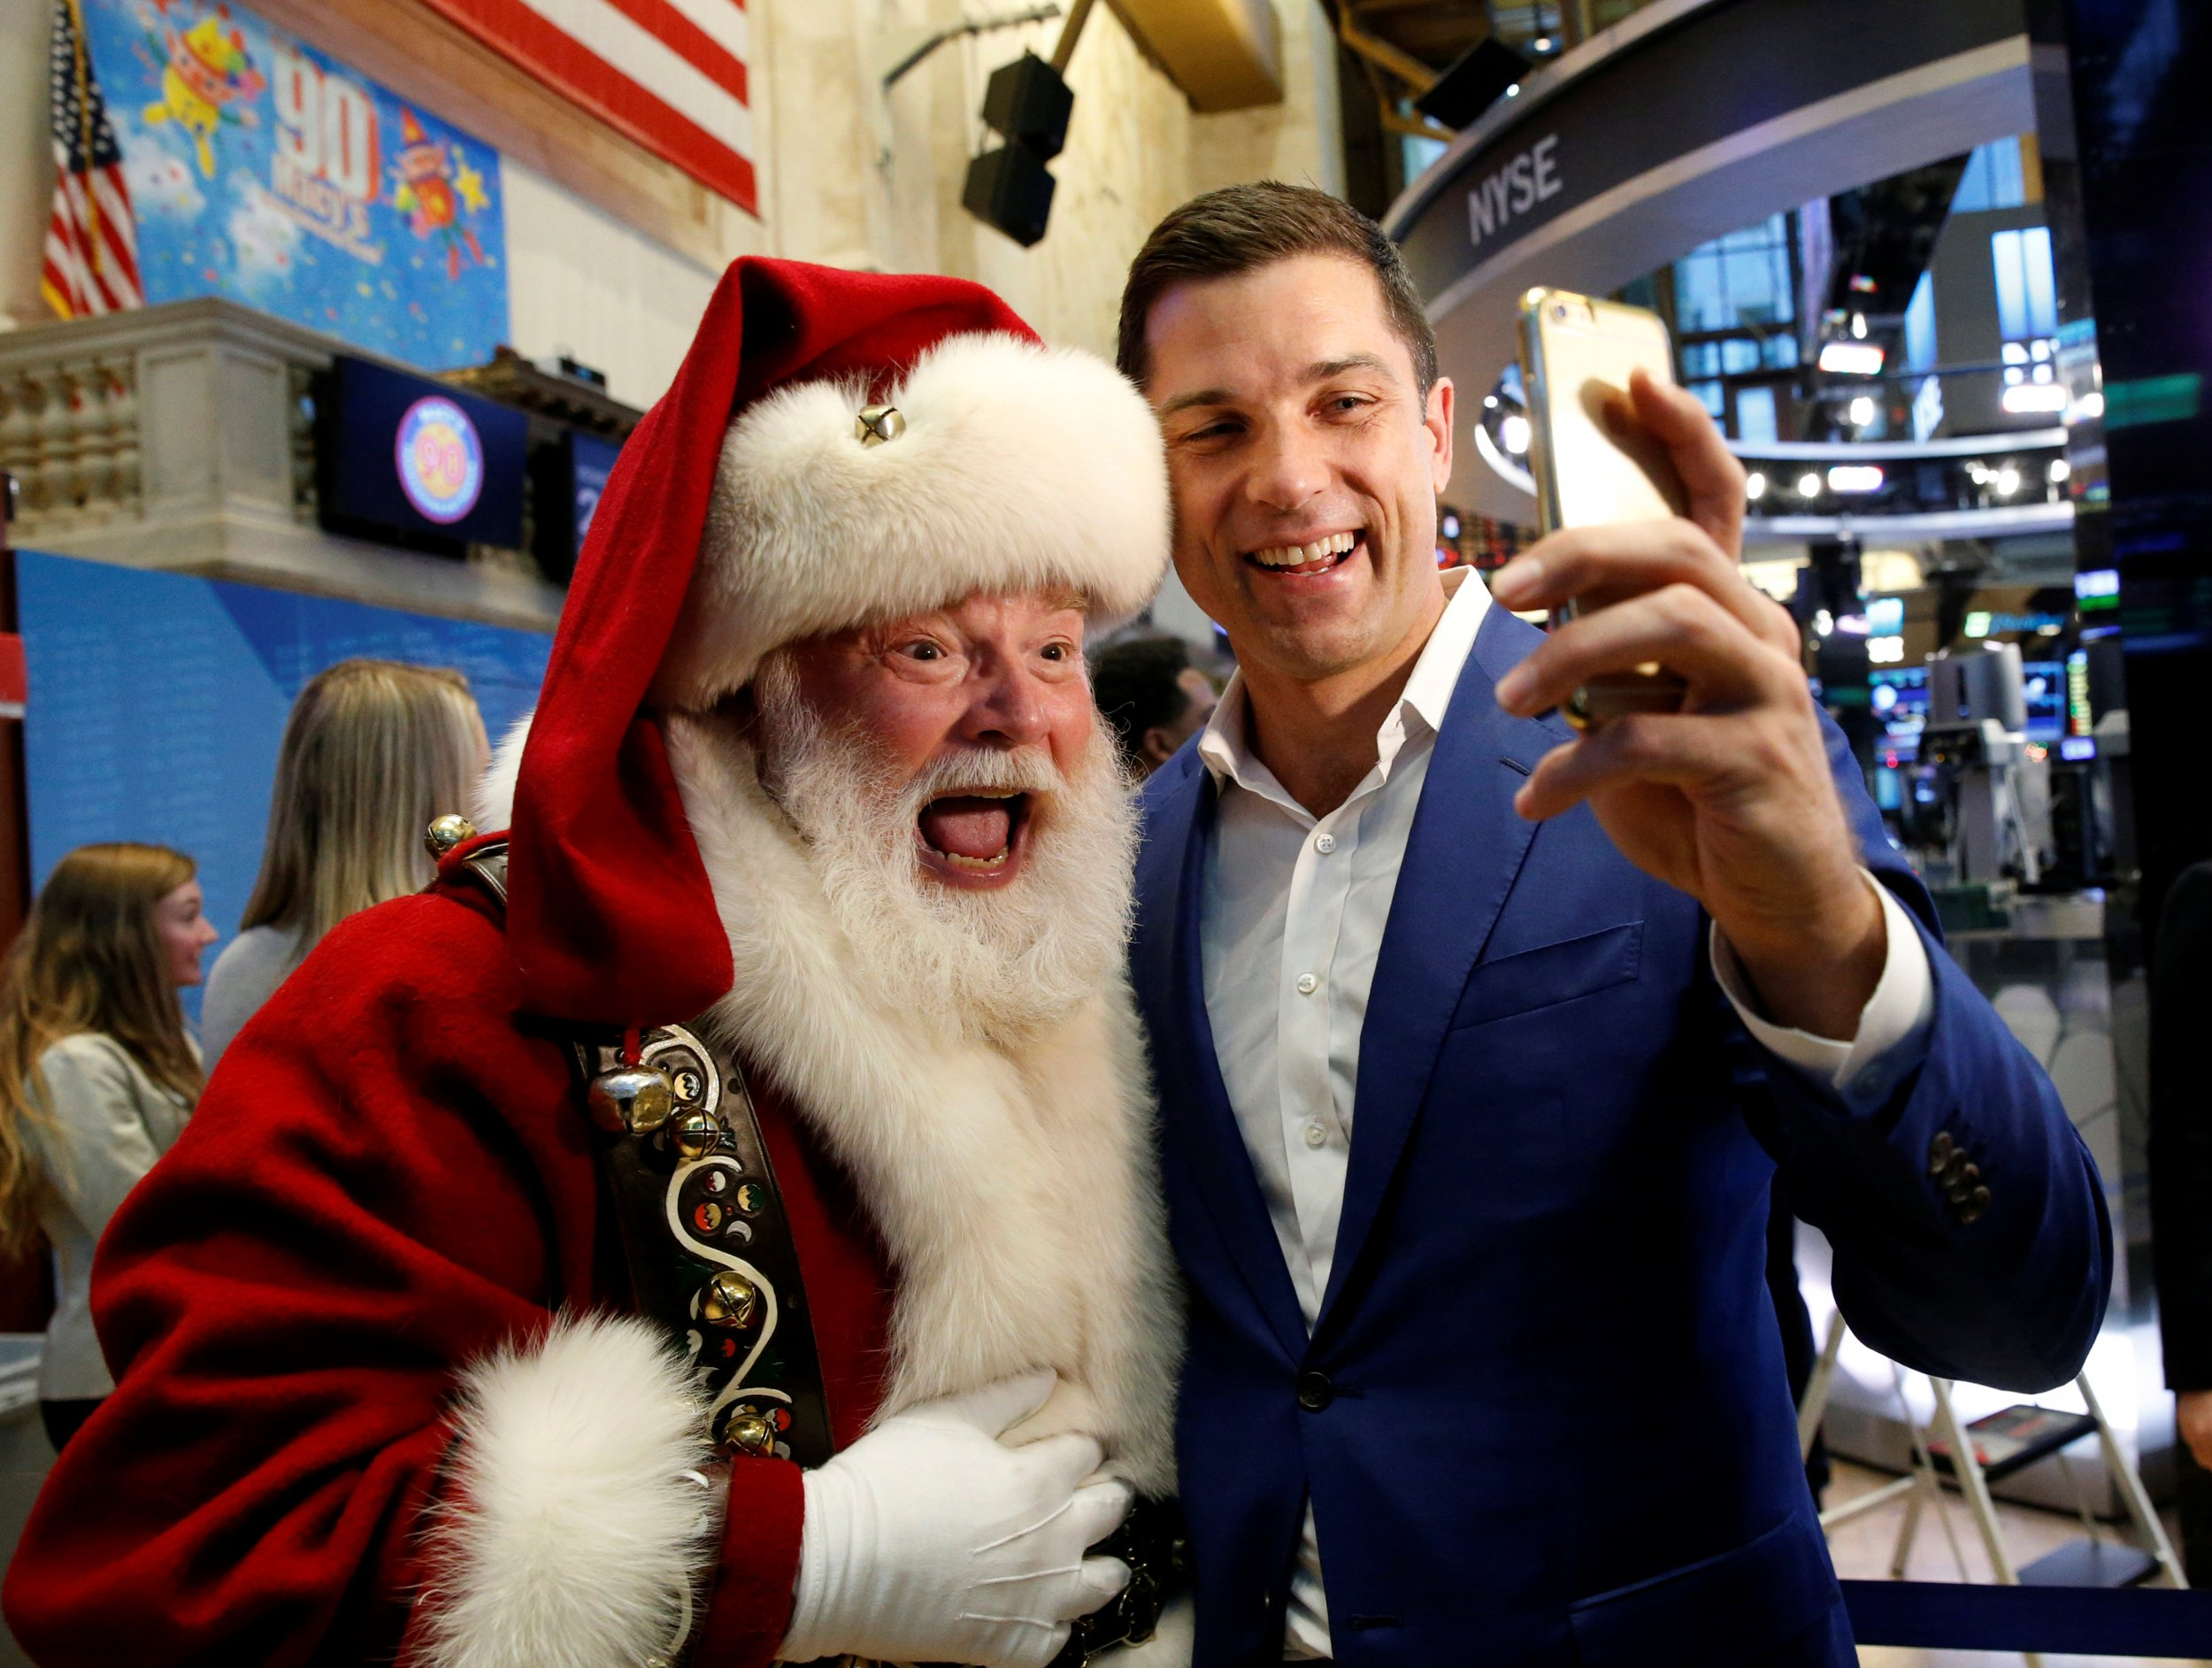 psychologists warn that belief in santa could harm parent child